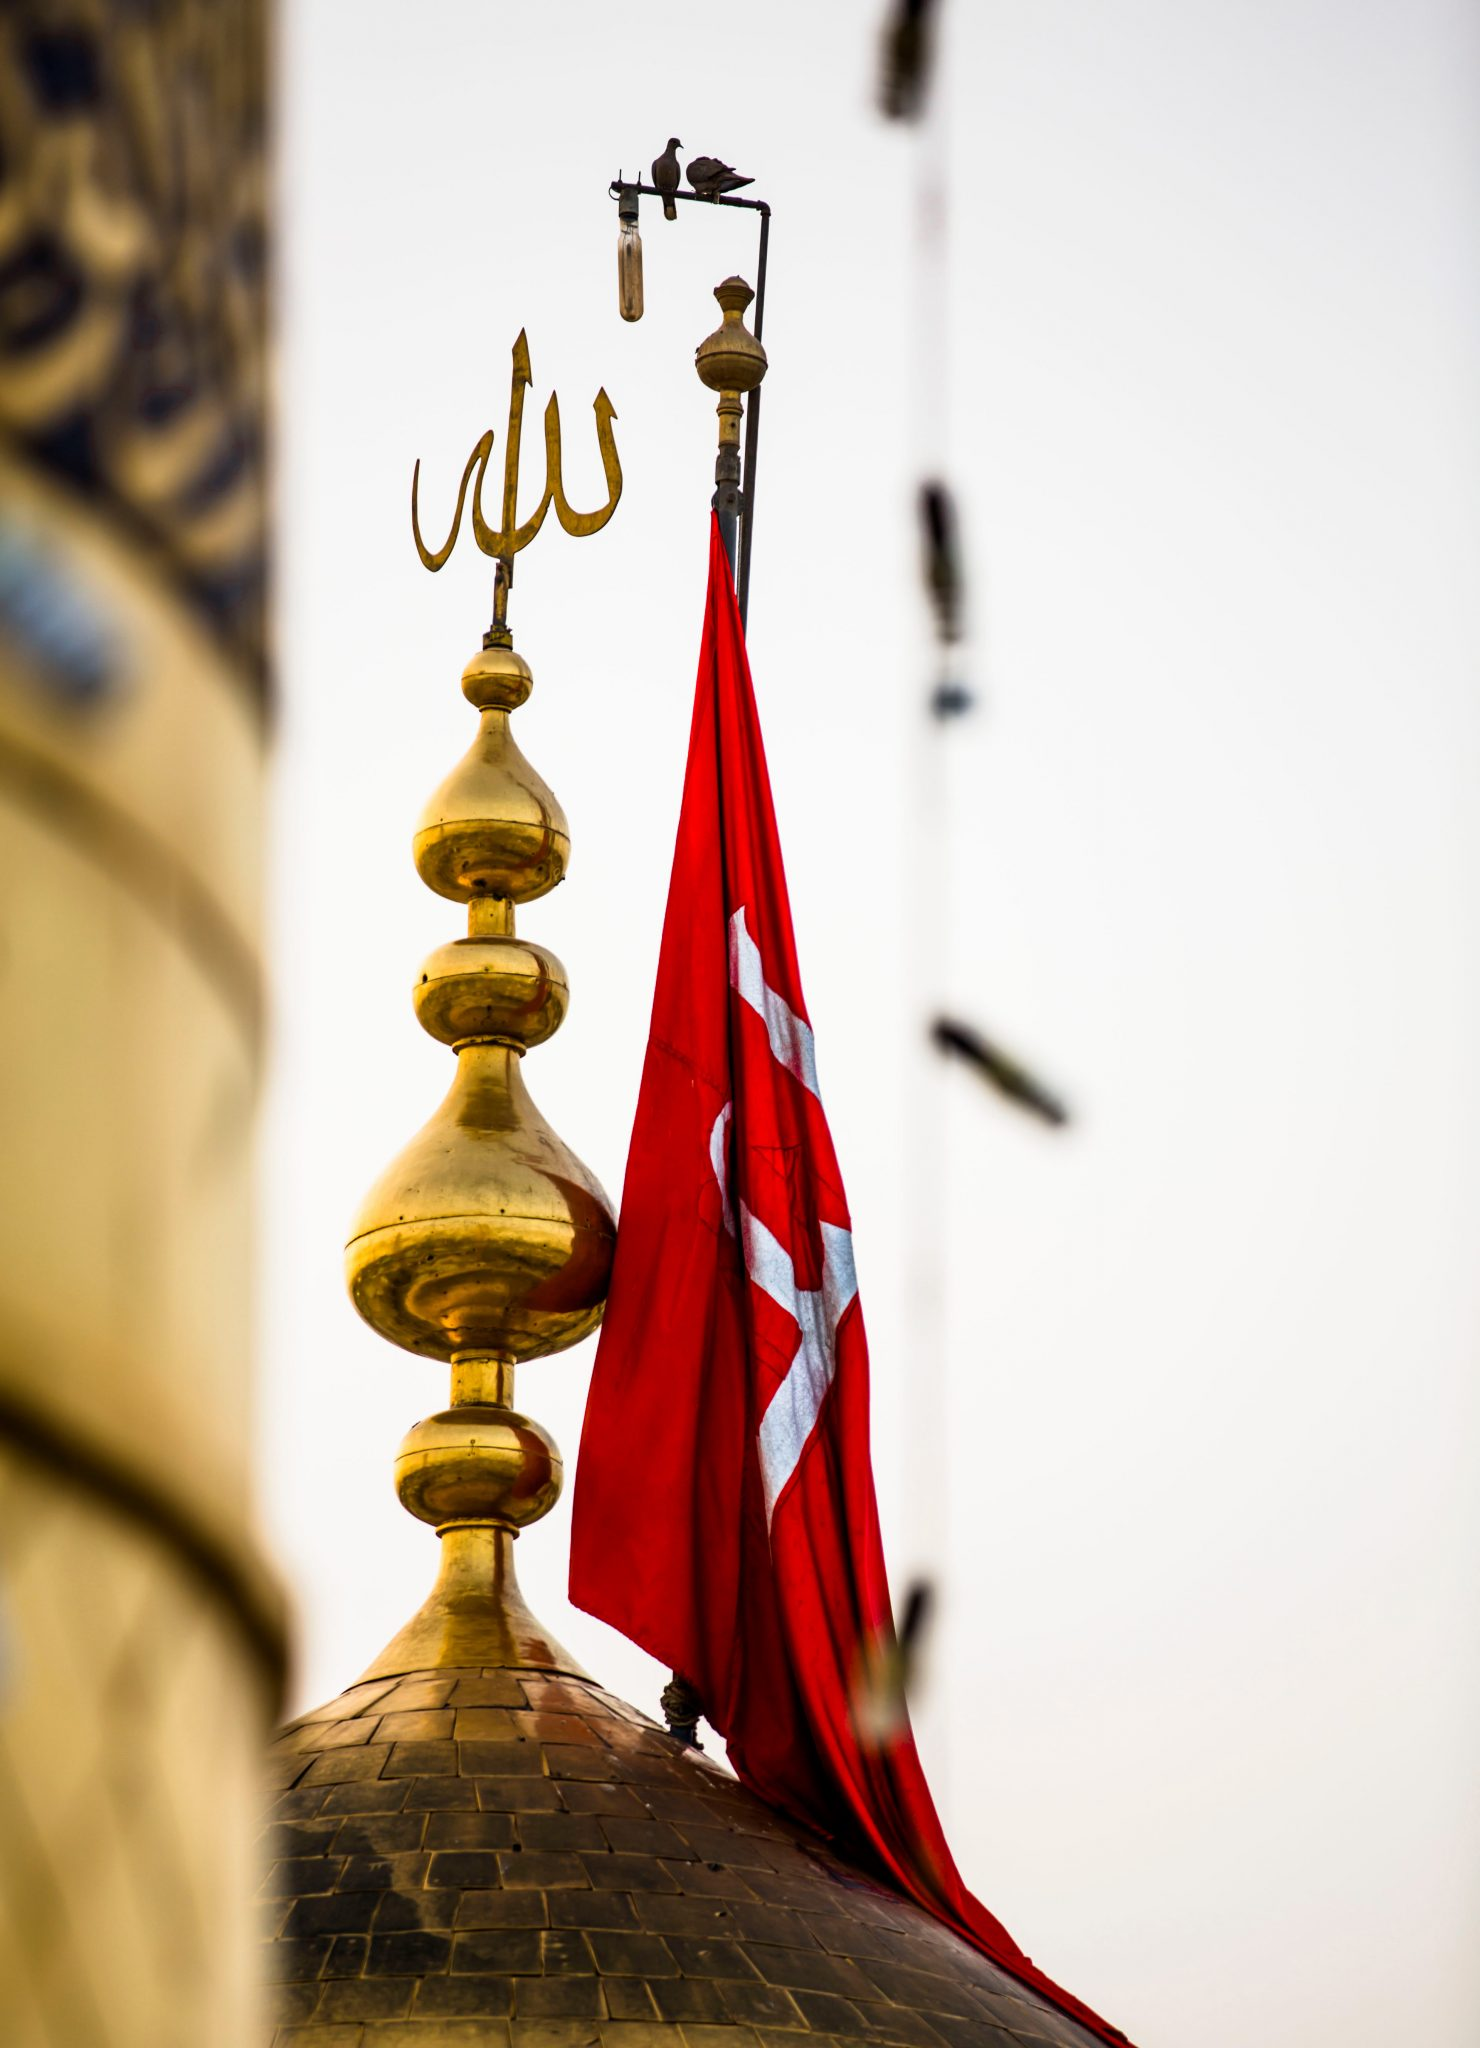 The flag pole on the dome of Hussain's shrine